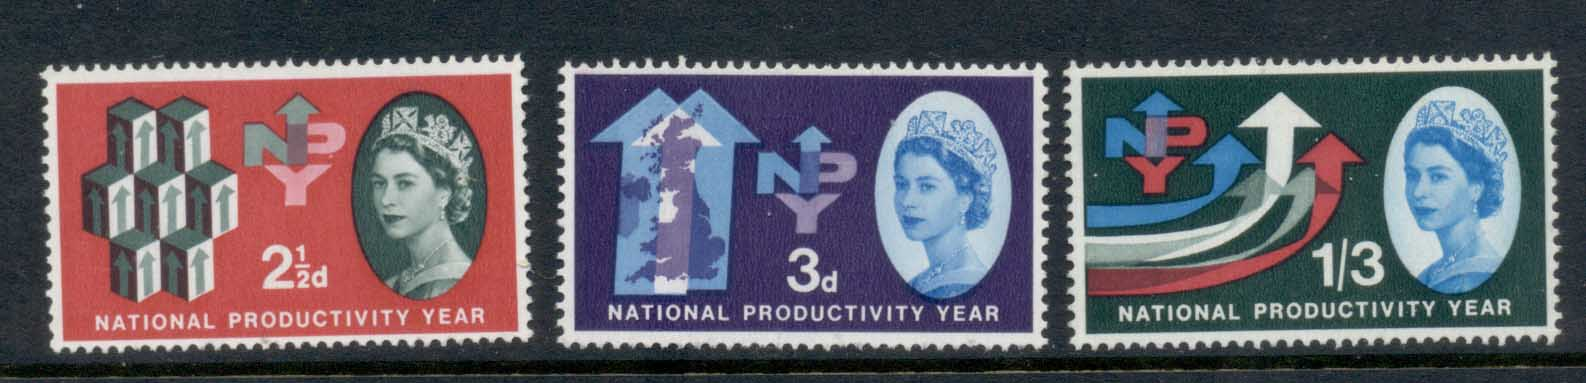 GB 1962 National Productivity year MLH